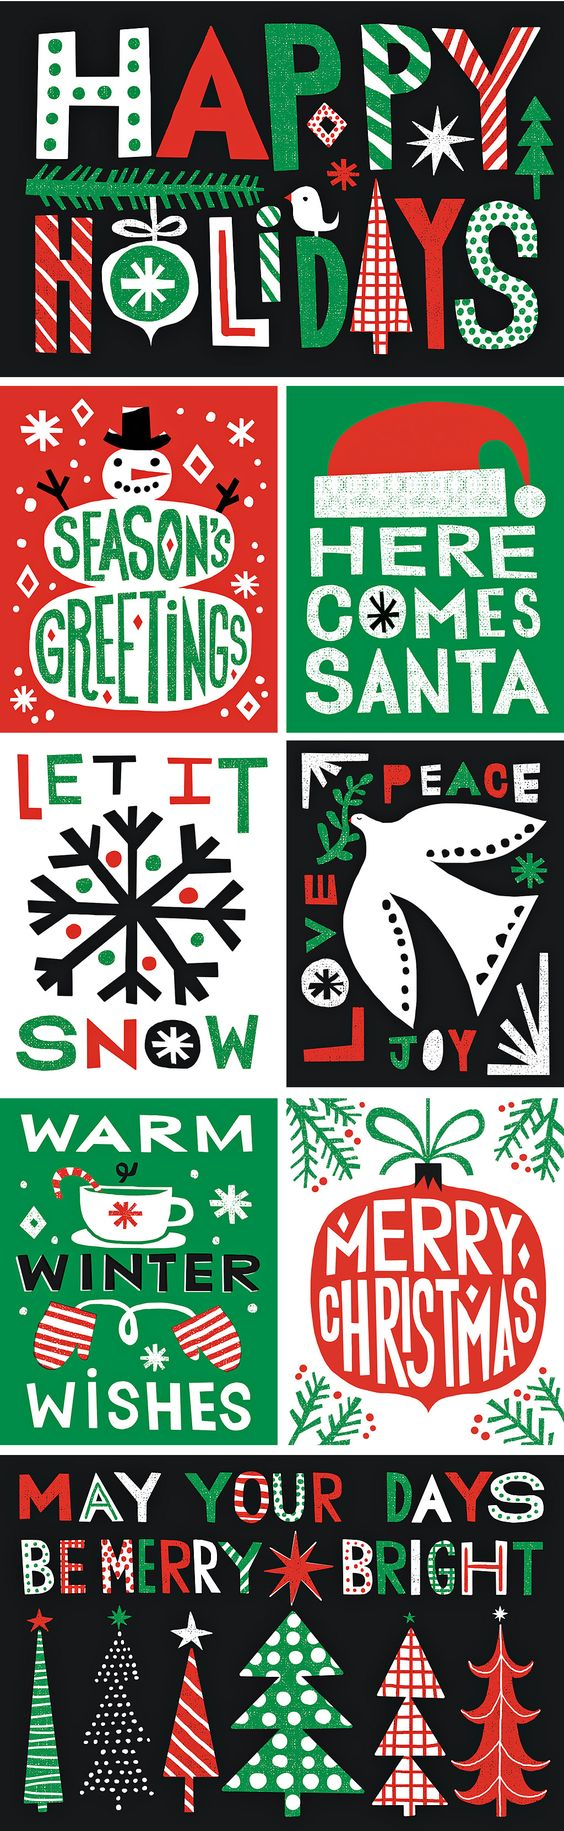 SID16794R_Christmas_Whimsy_Happy_Holidays.jpg: